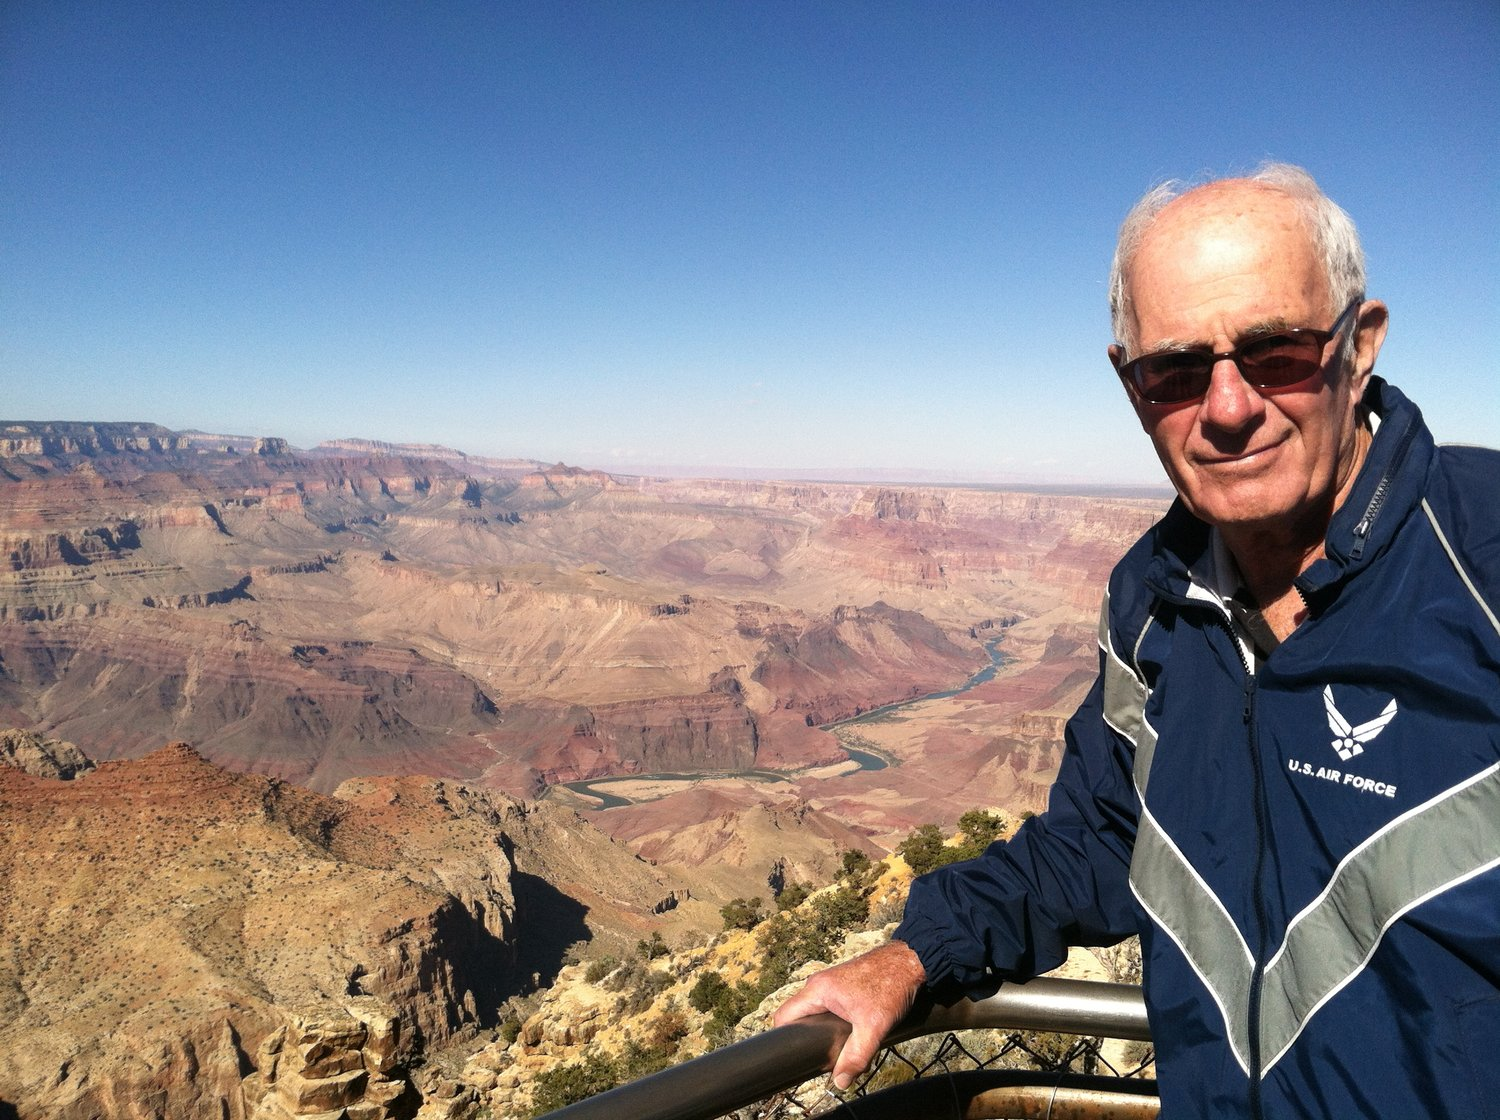 Leonard Kirschner poses near the canyon during a pre-pandemic visit to Grand Canyon National Park.